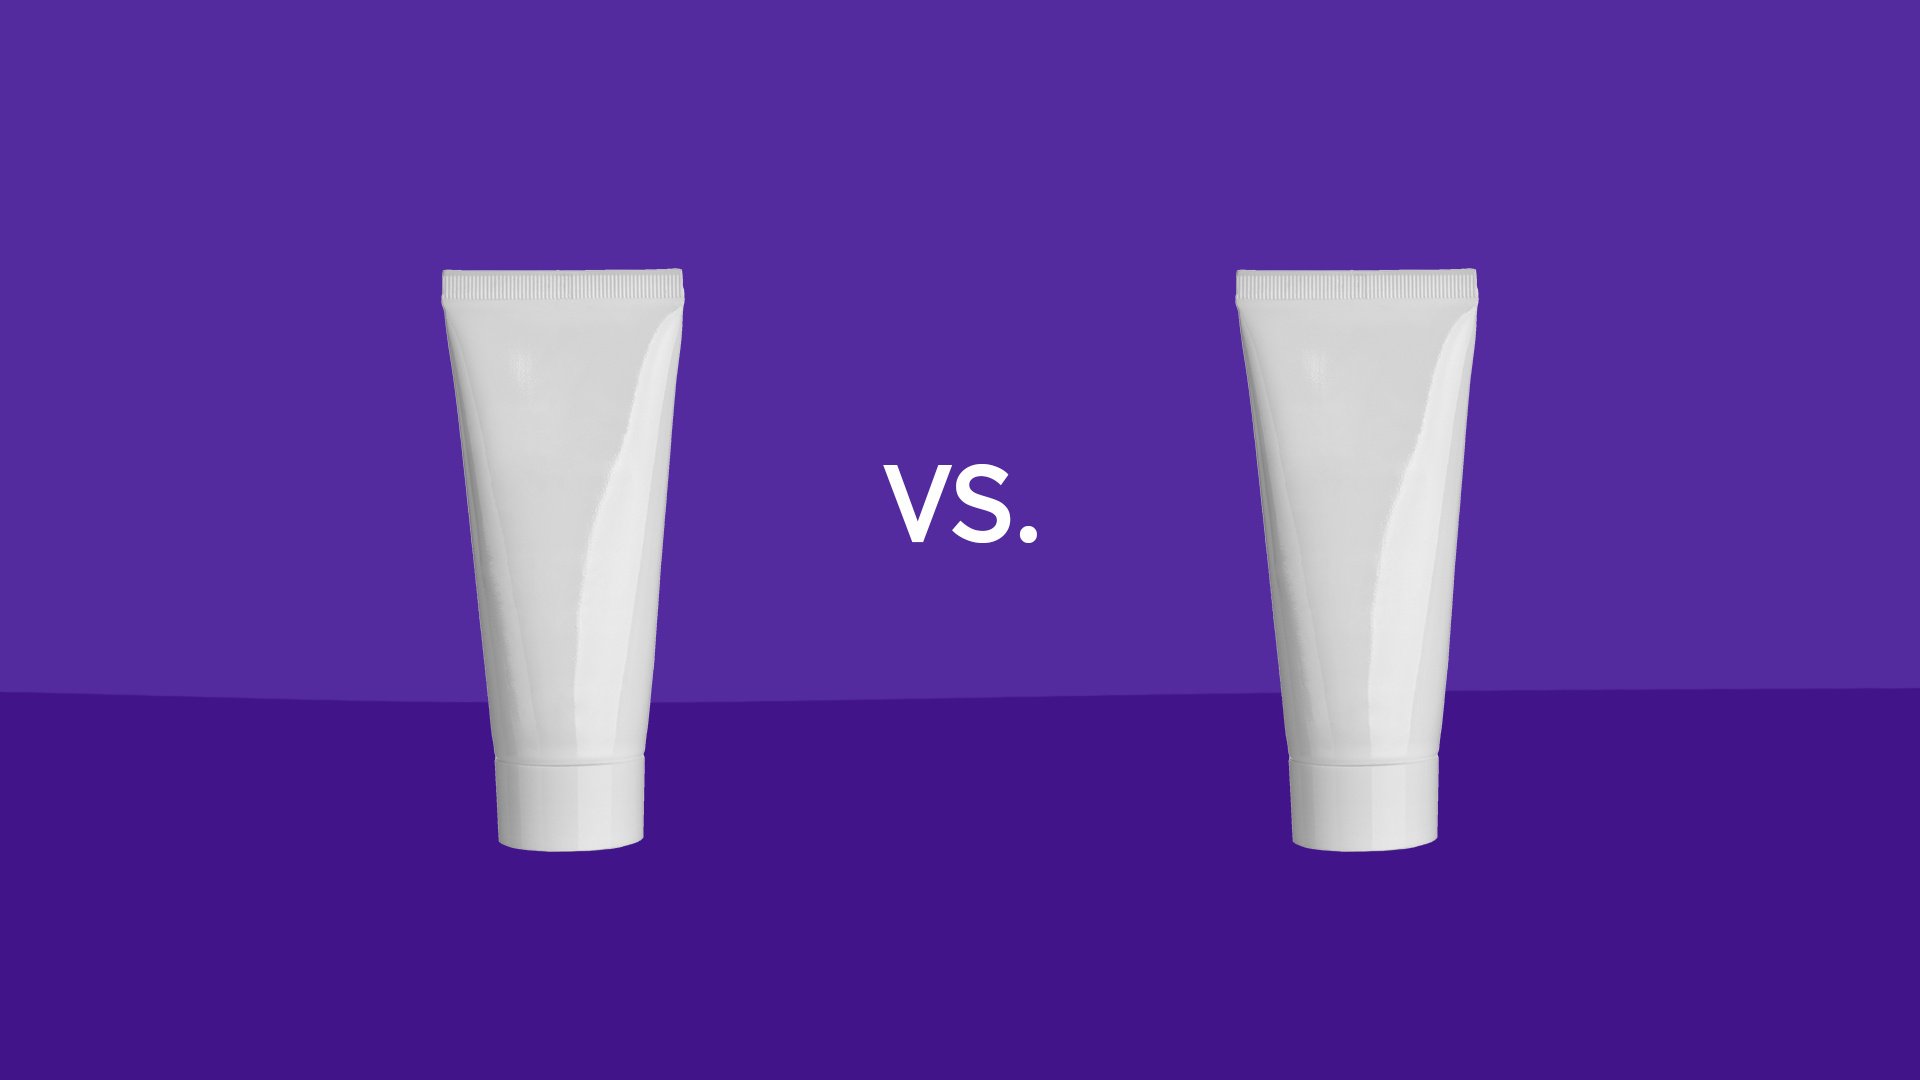 Hydrocortisone vs. cortisone: Differences, similarities, and which is better for you